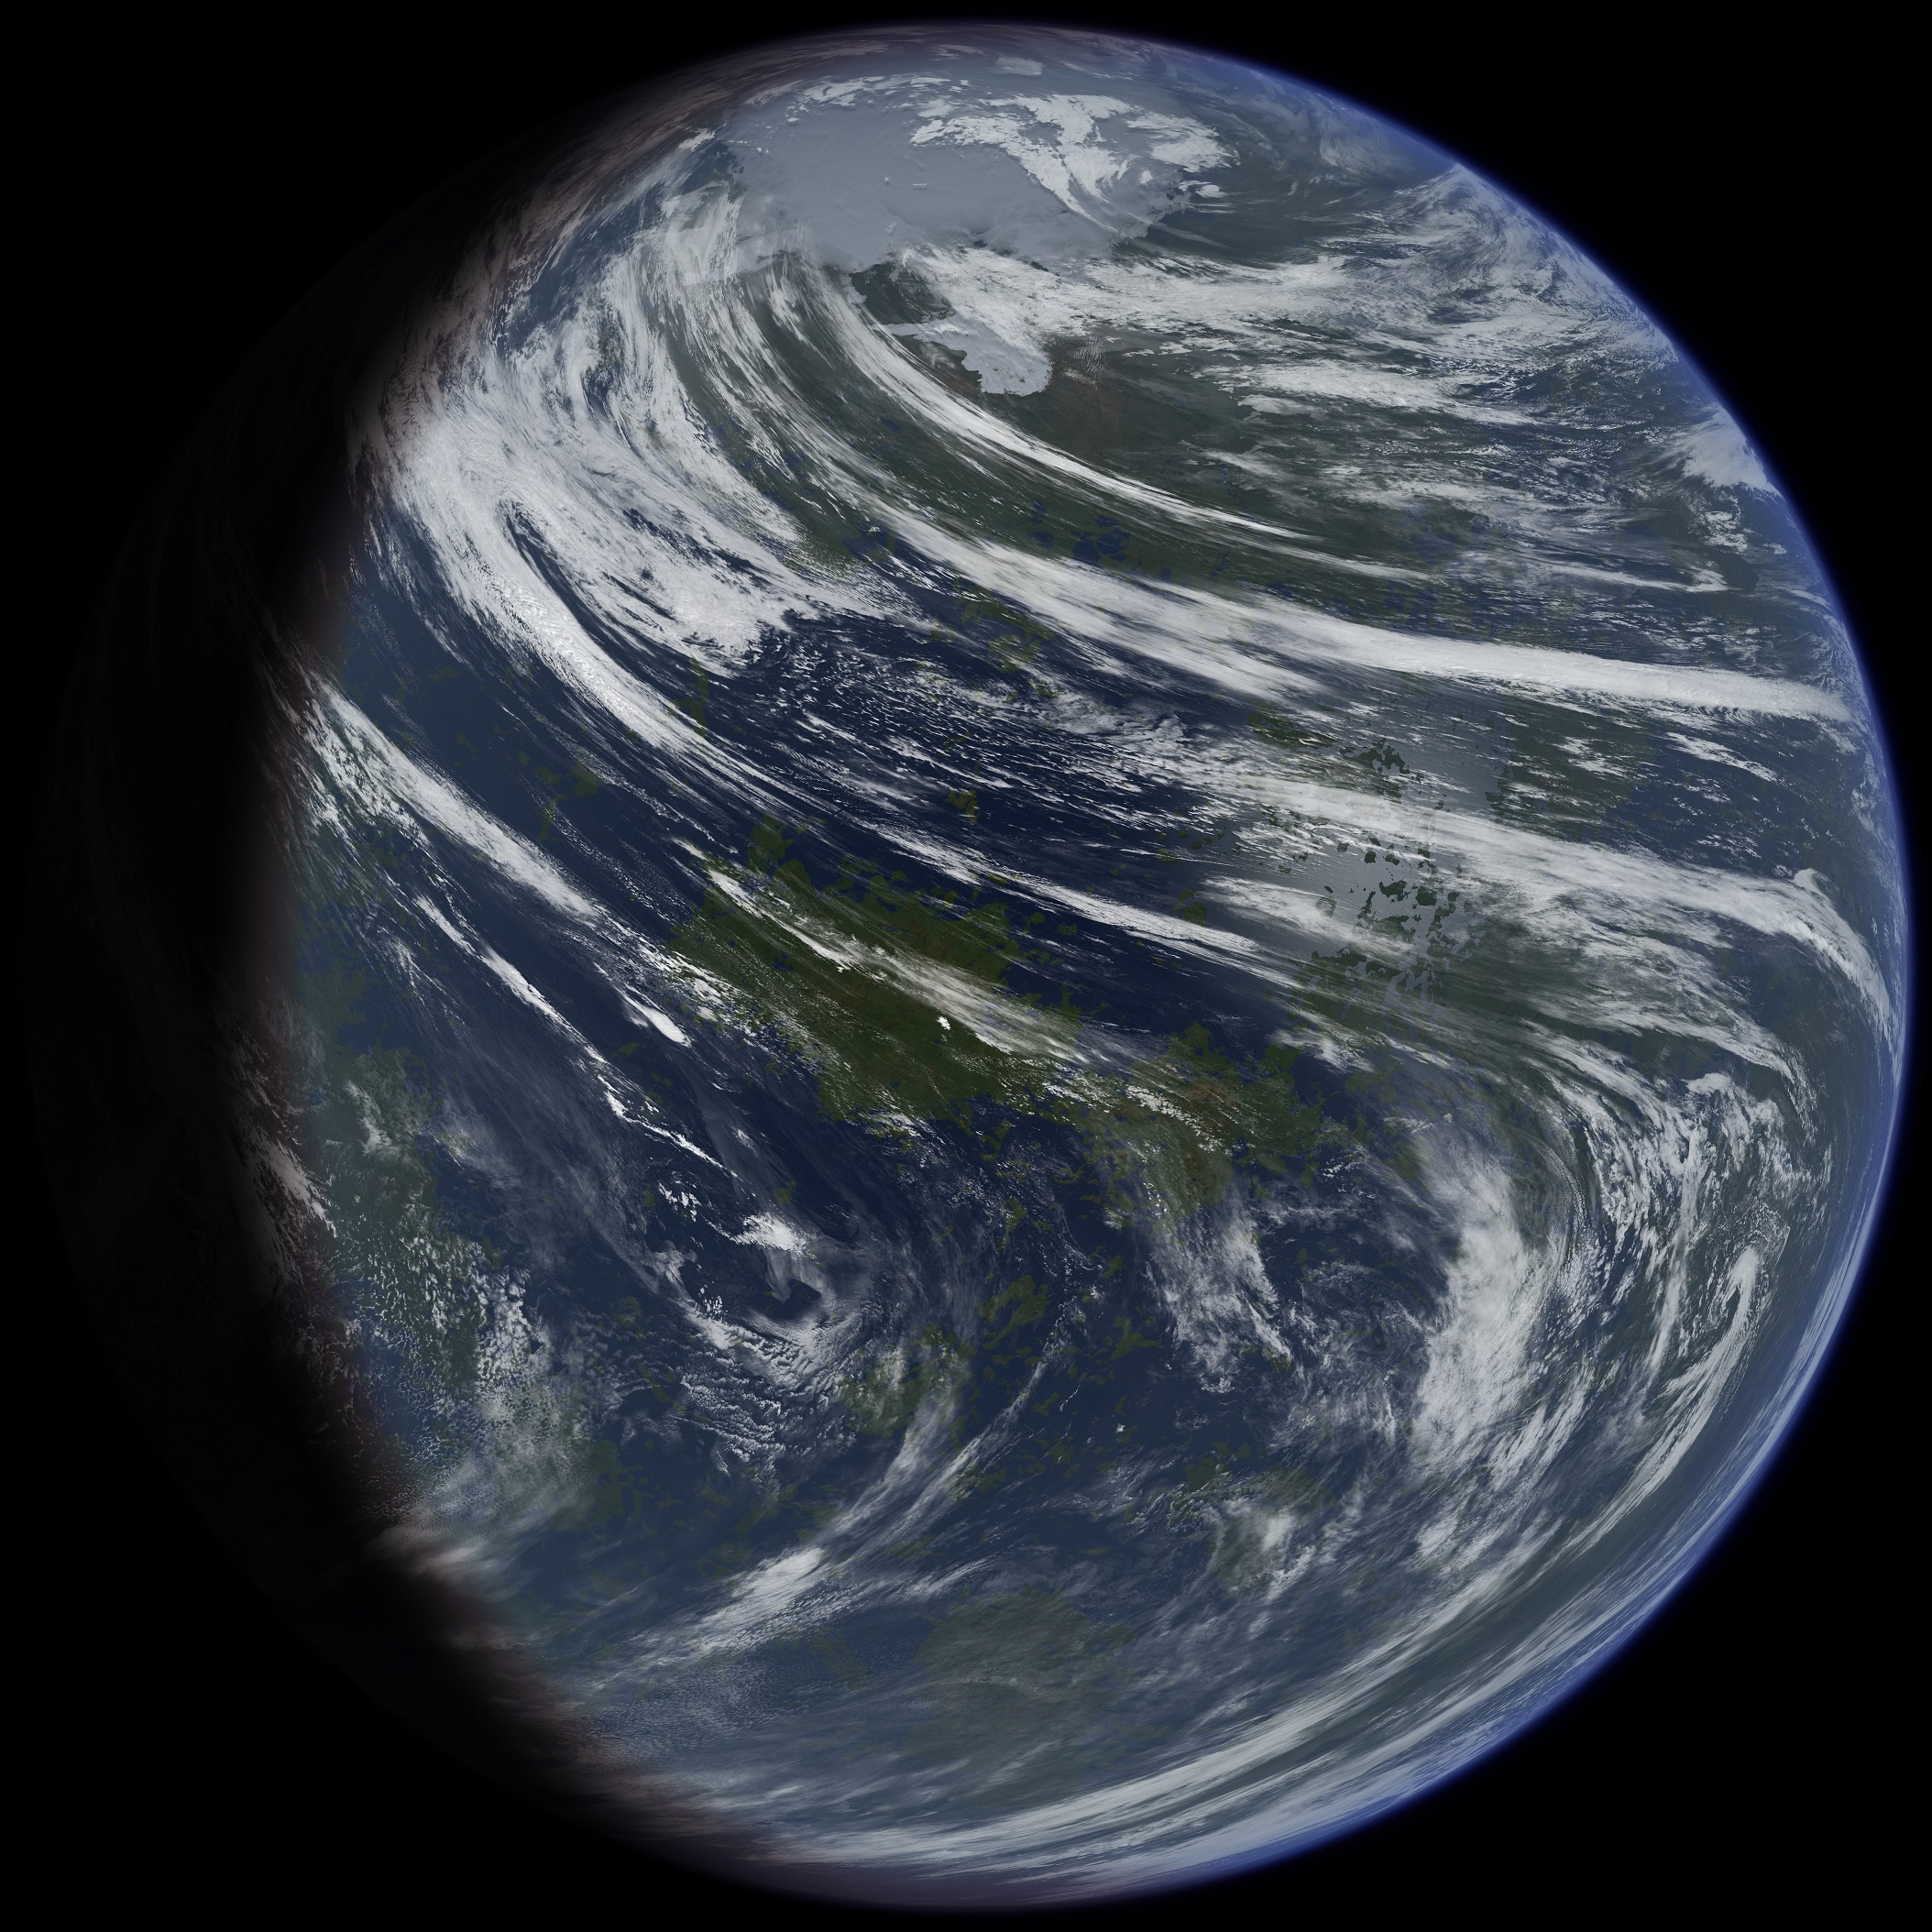 """A conceptual picture I made of Venus if it were terraformed. (Credit: Daein Ballard) Notice the interesting cloud formations and that the planet has polar caps. I decided to show the planet this way after studying Venus' atmosphere. The two Hadley cells the planet has stop at 70 degrees north and south. So the polar regions are cut off from the warm air. Also the slow rotation of the planet causes the clouds to whip around the planet very fast, especially at the equator, to balance out the temperature difference between day and night sides of the planet.""\(^{[5]}\)  Image credit:   Ittiz at the English language Wikipedia [GFDL (http://www.gnu.org/copyleft/fdl.html) or CC-BY-SA-3.0 (http://creativecommons.org/licenses/by-sa/3.0/)], via Wikimedia Commons"